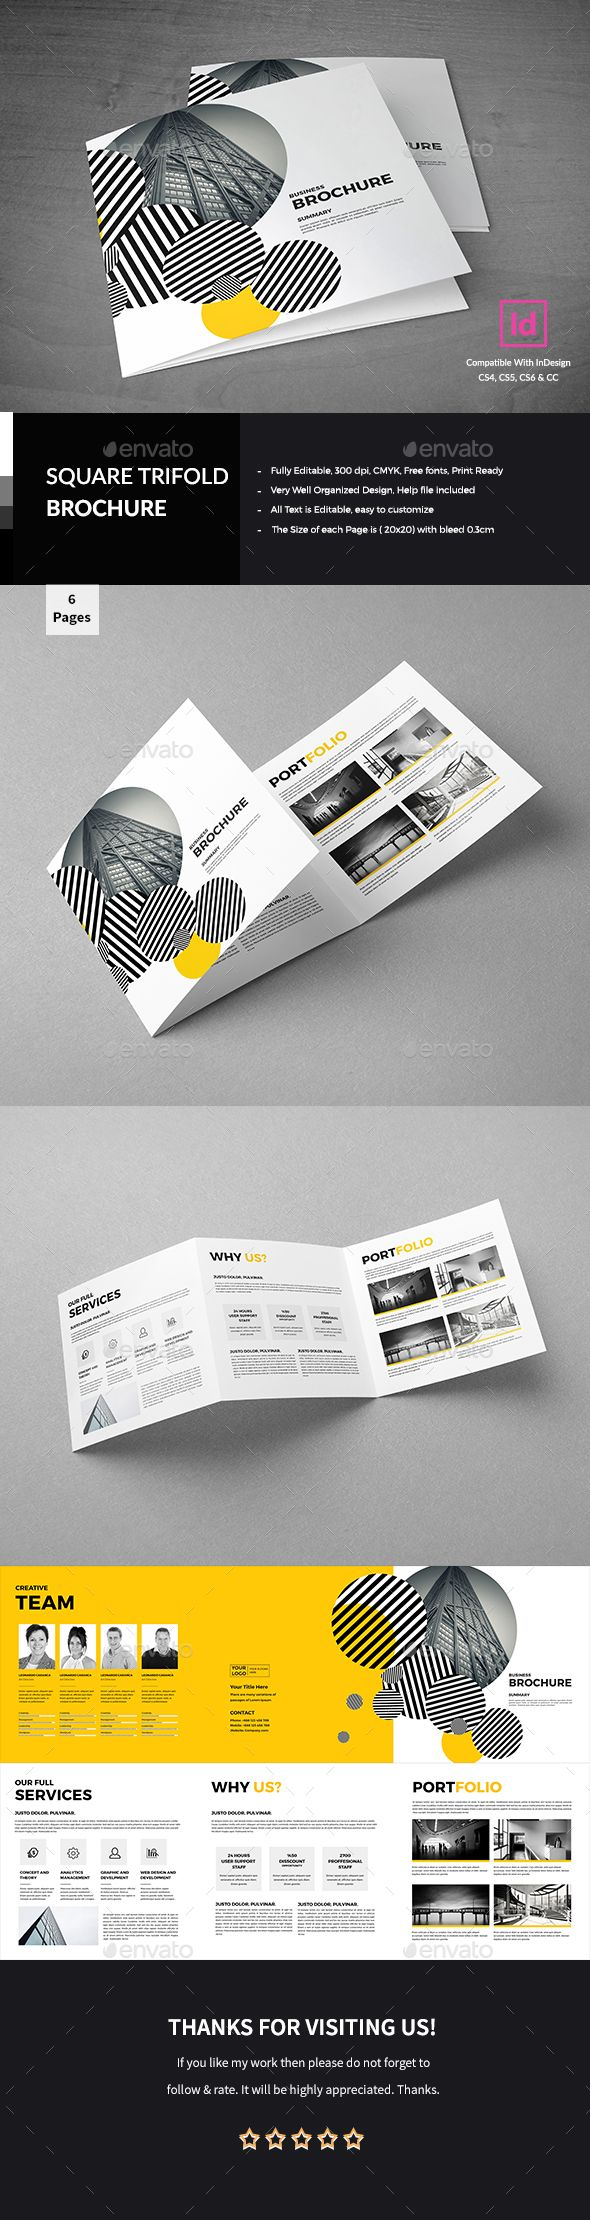 Corporate Square Trifold Brochure Template InDesign INDD